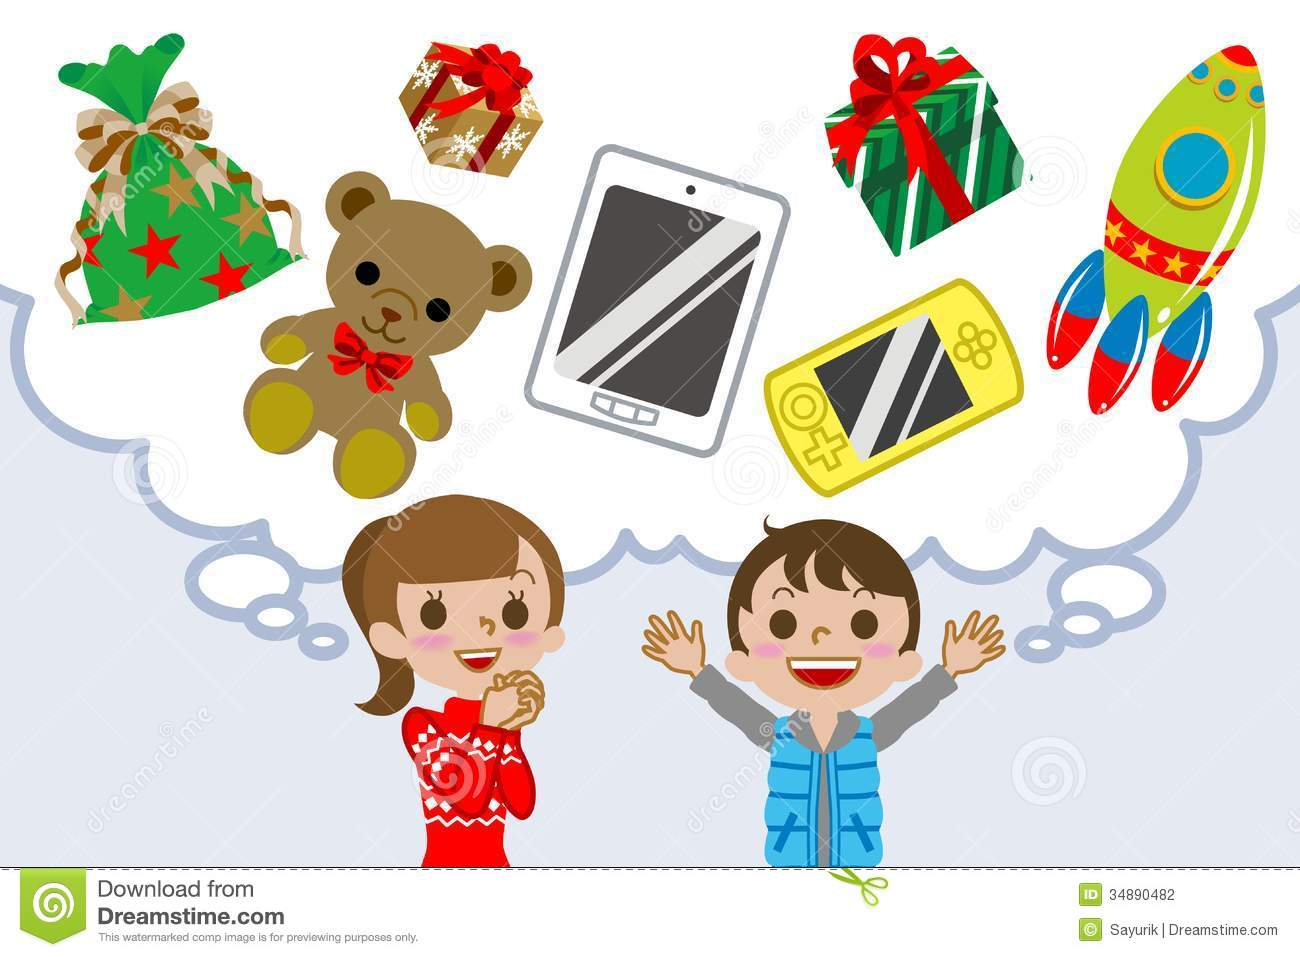 Kids Christmas Toy : Children wishing gift stock vector illustration of bubble